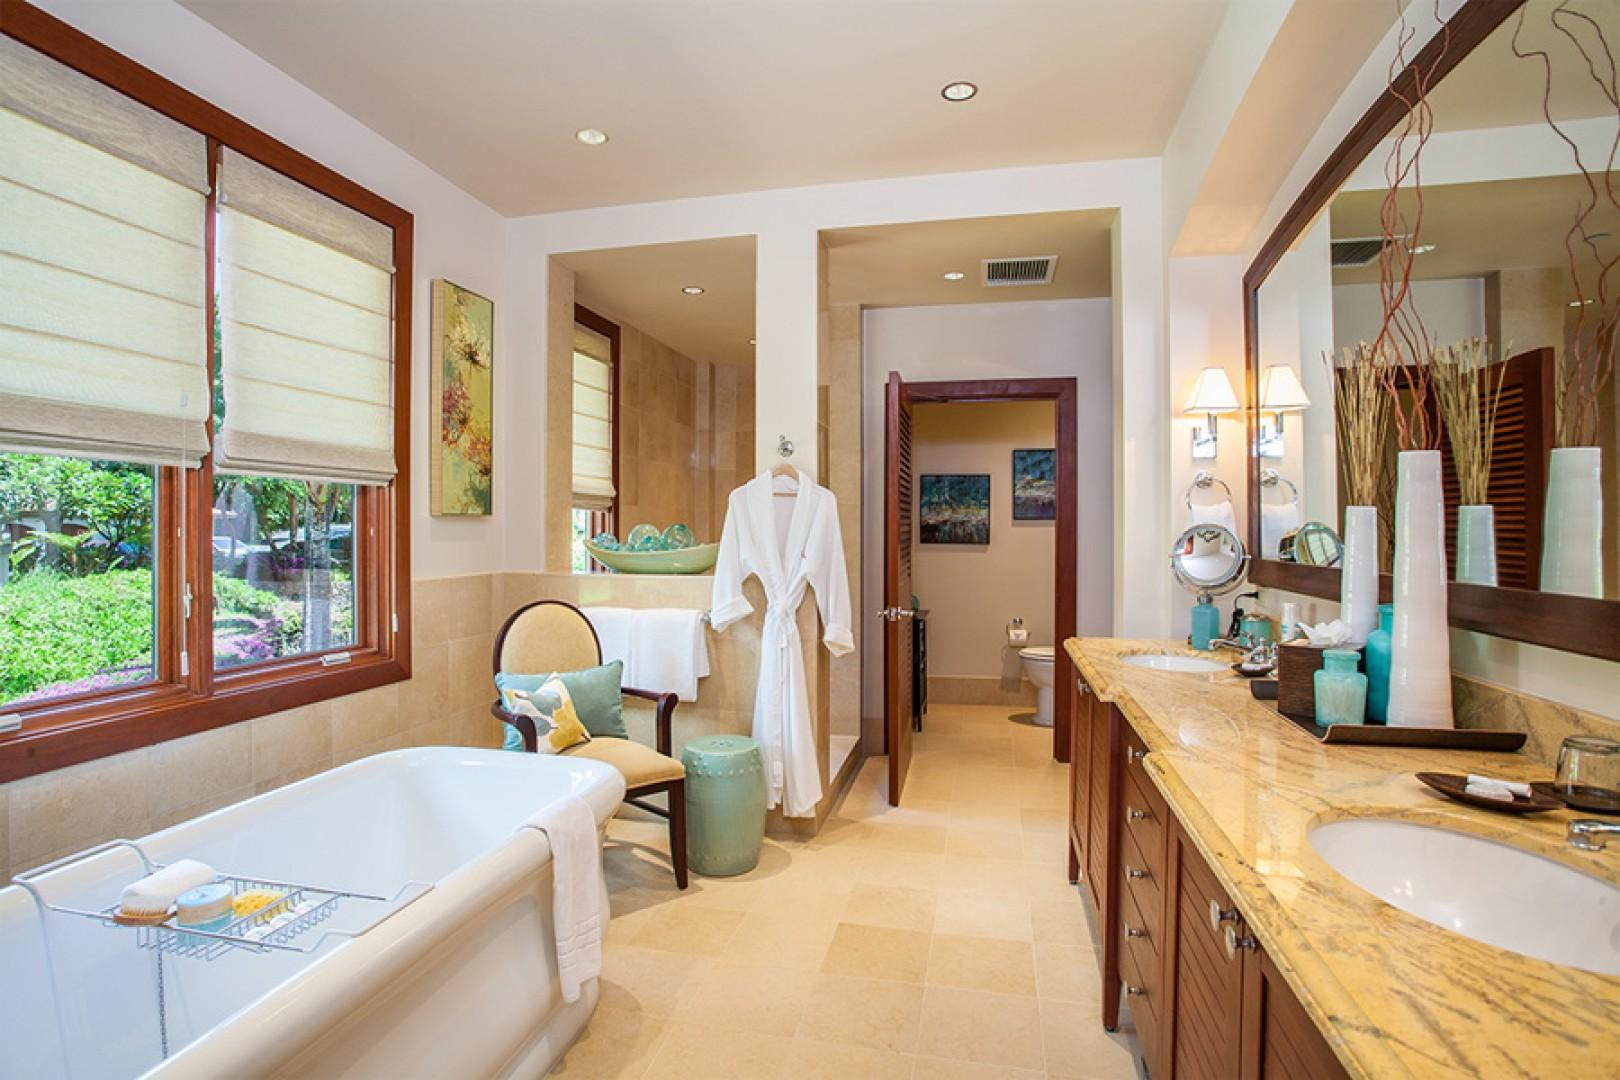 Sun Splash C301 - Ocean View Master Bath with Deep Soaking Tub and Separate Shower, Private WC, and Walk-In Closet